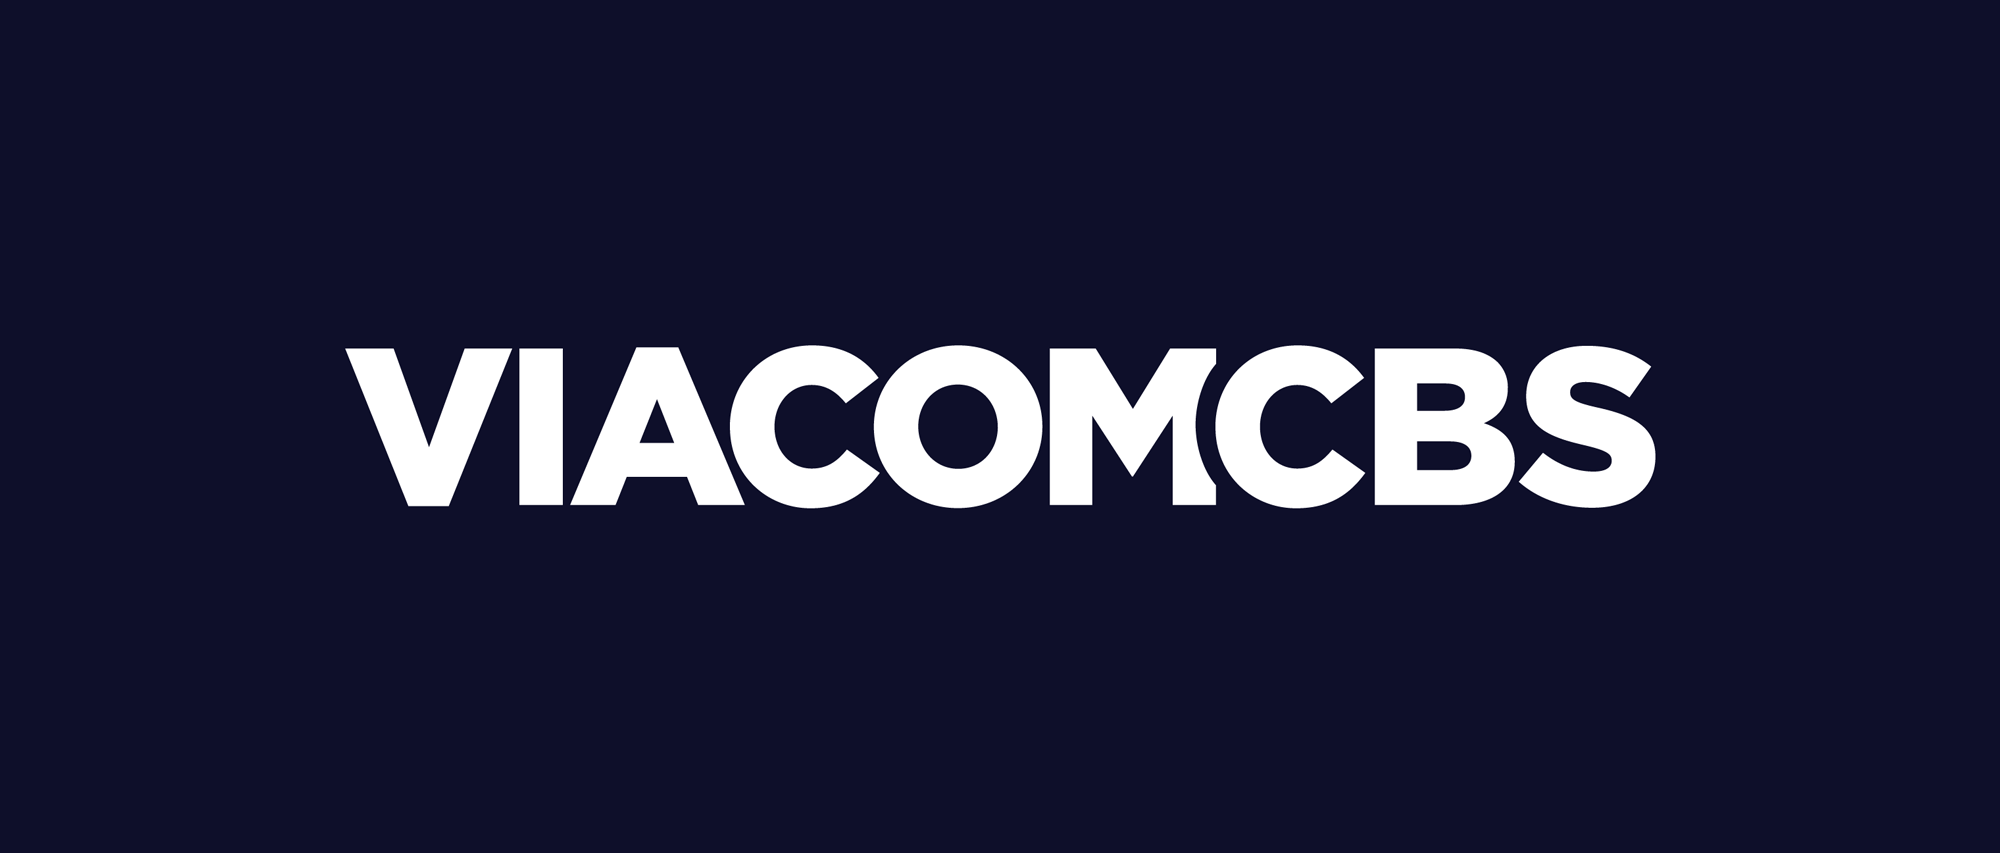 New Name and Logo for ViacomCBS